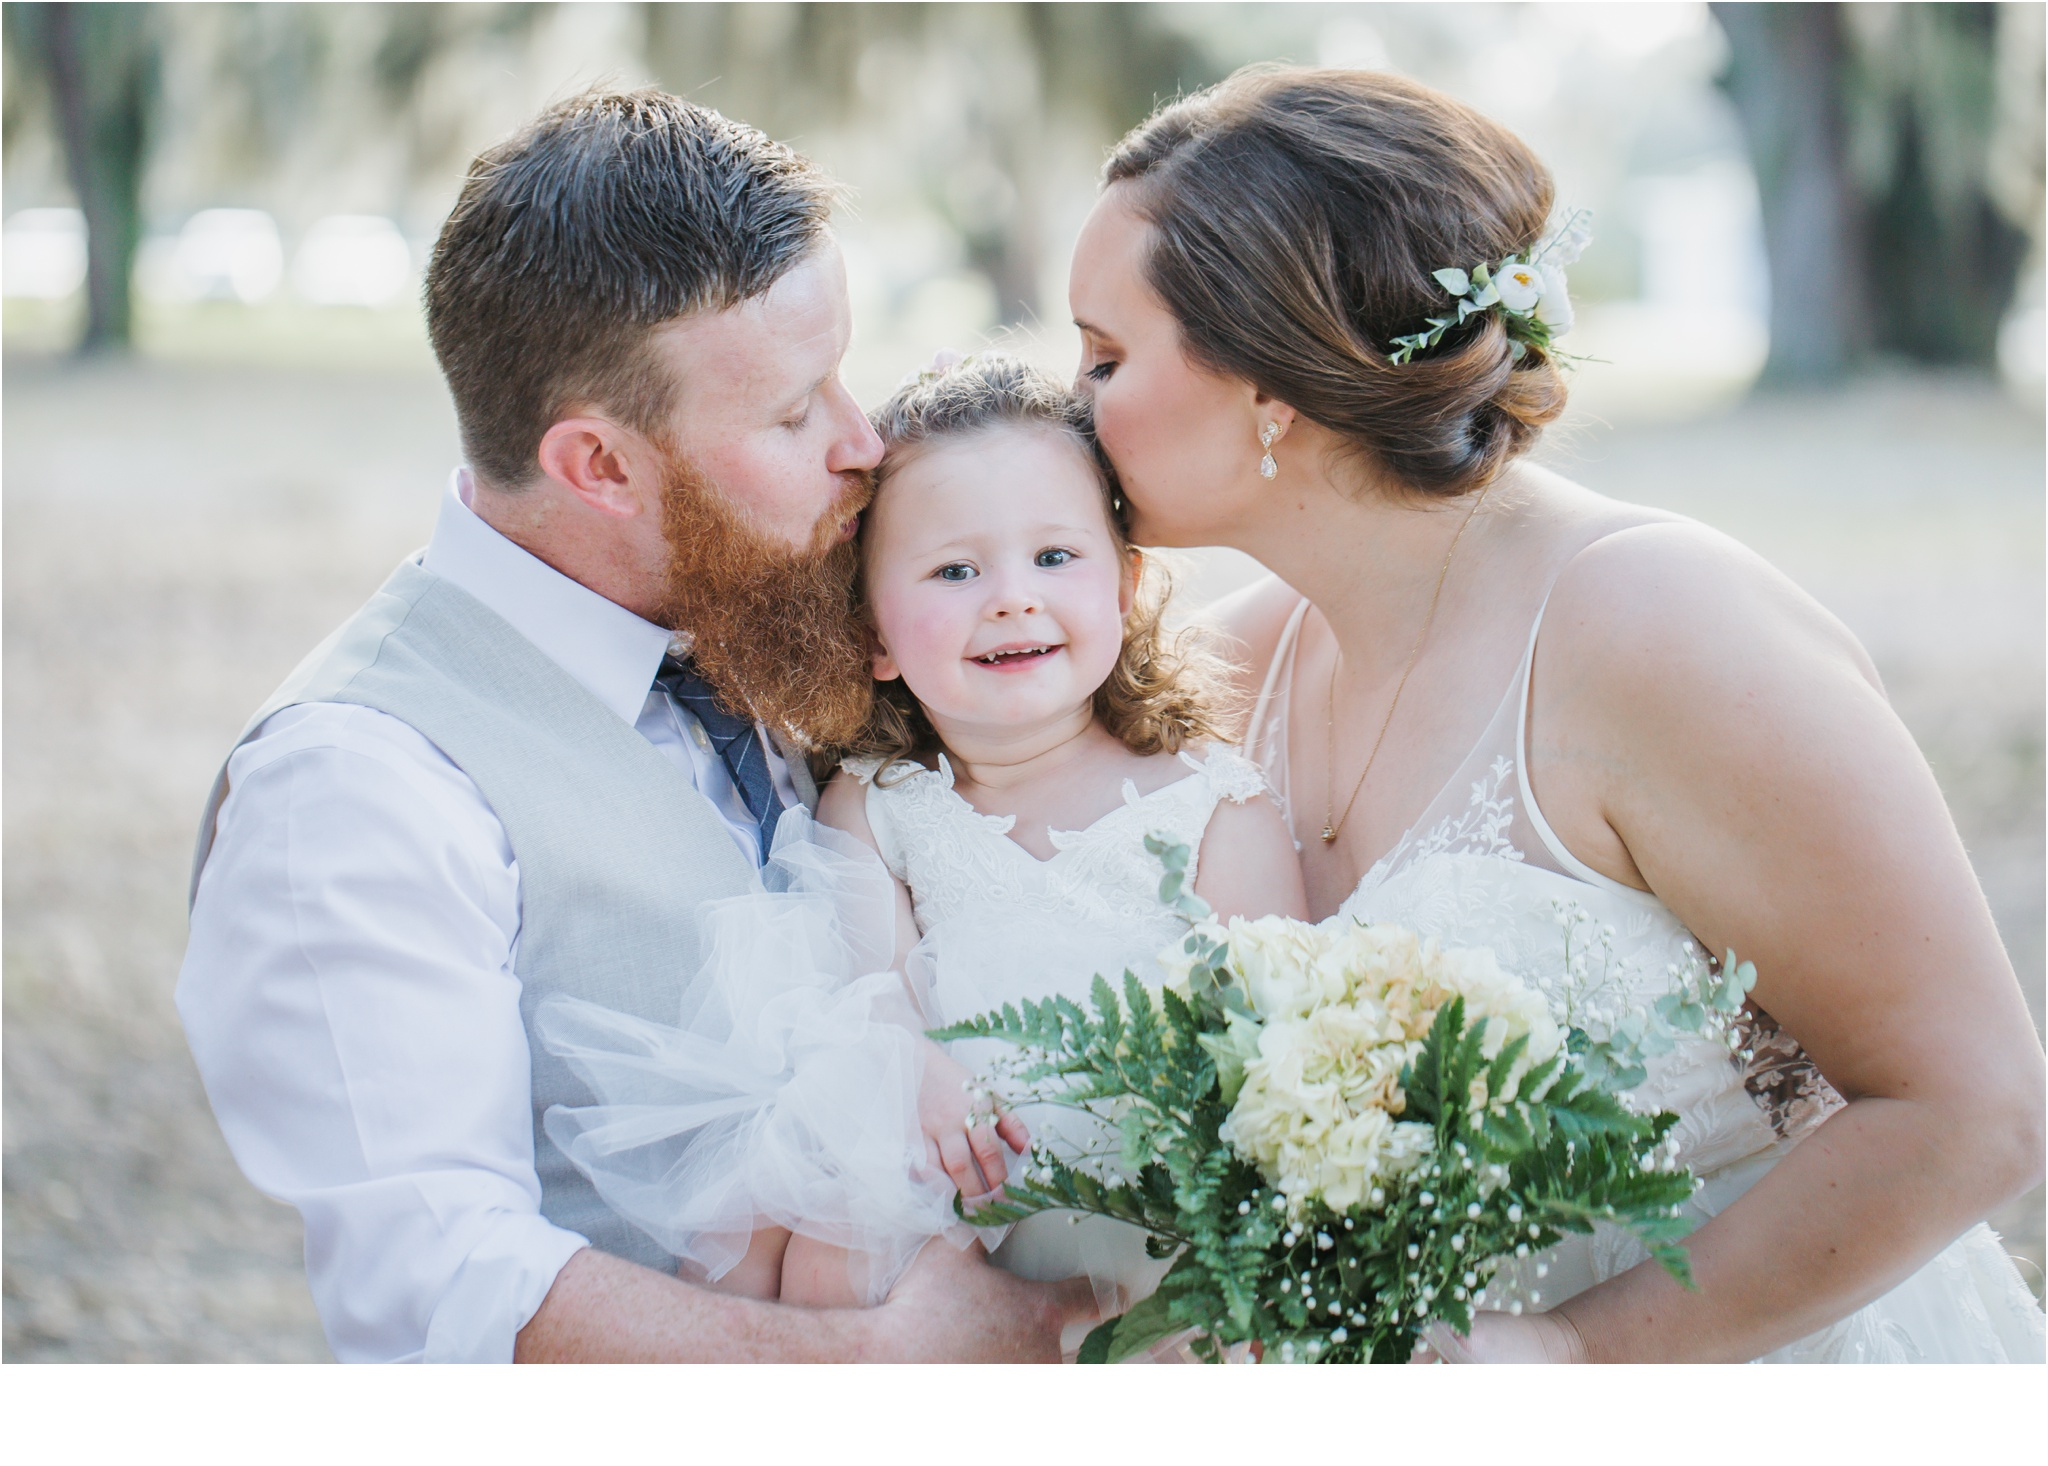 Rainey_Gregg_Photography_St._Simons_Island_Georgia_California_Wedding_Portrait_Photography_1724.jpg